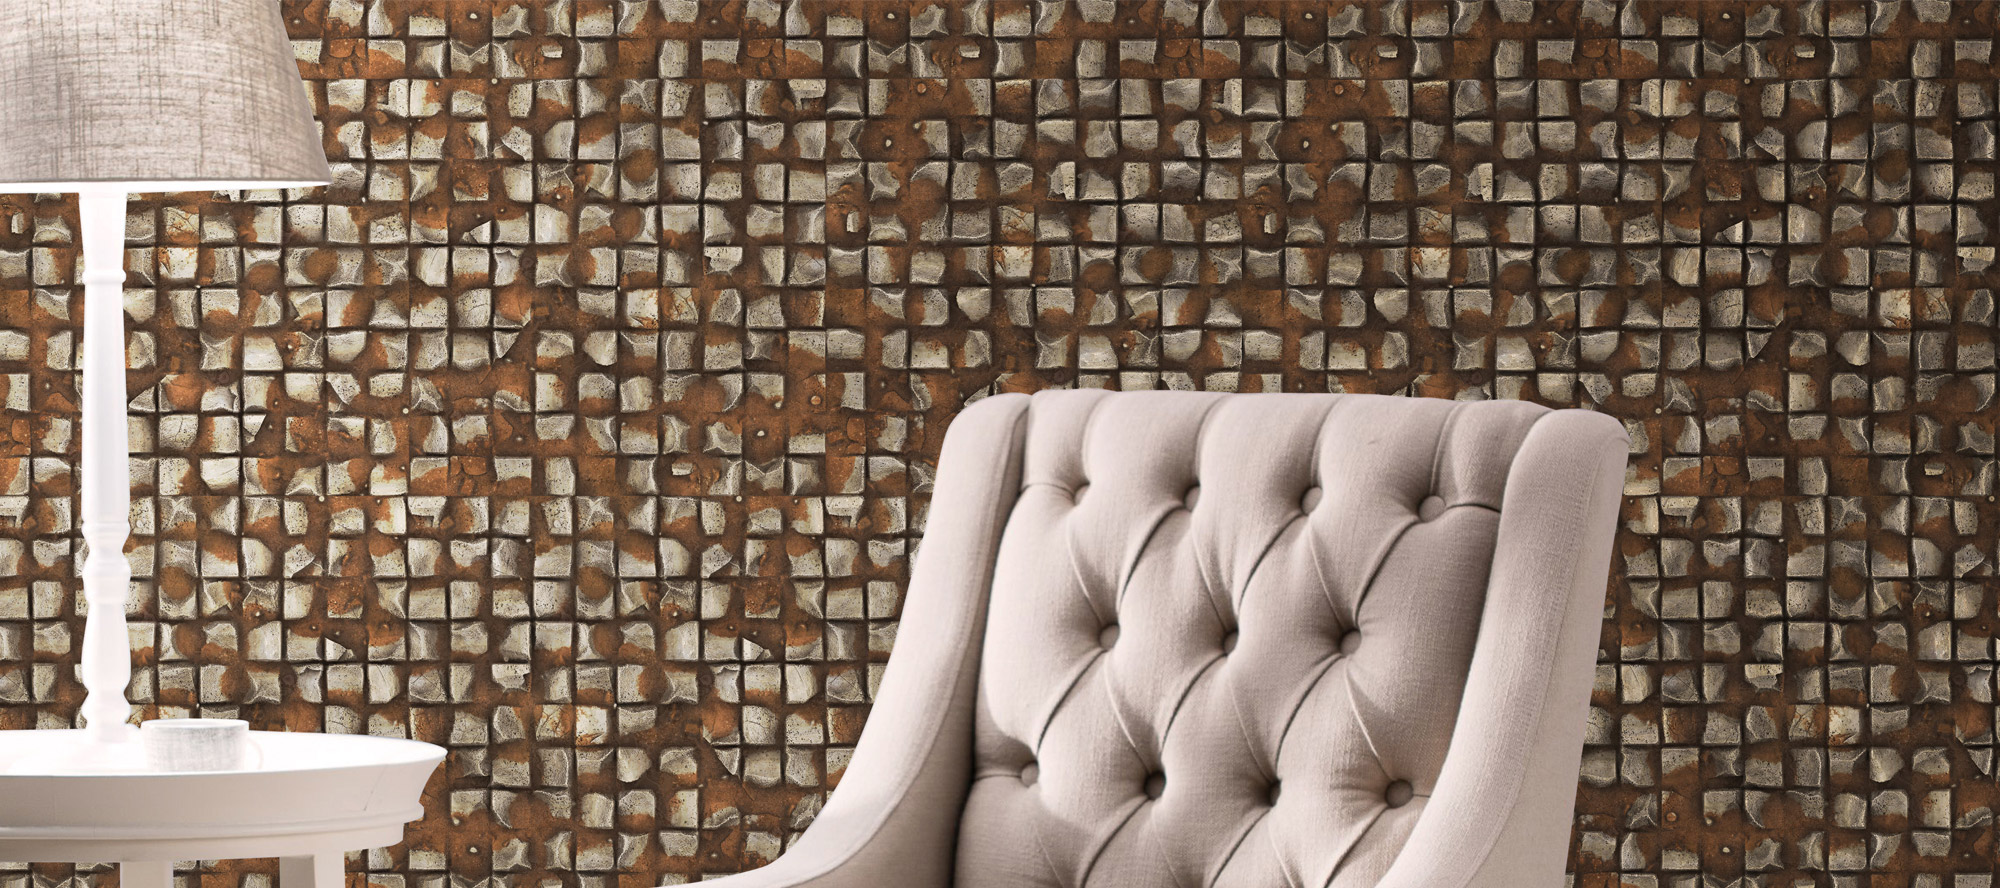 D'infinity, Abstrakt Kreatif Wooden Laminate Texture-Sundek International